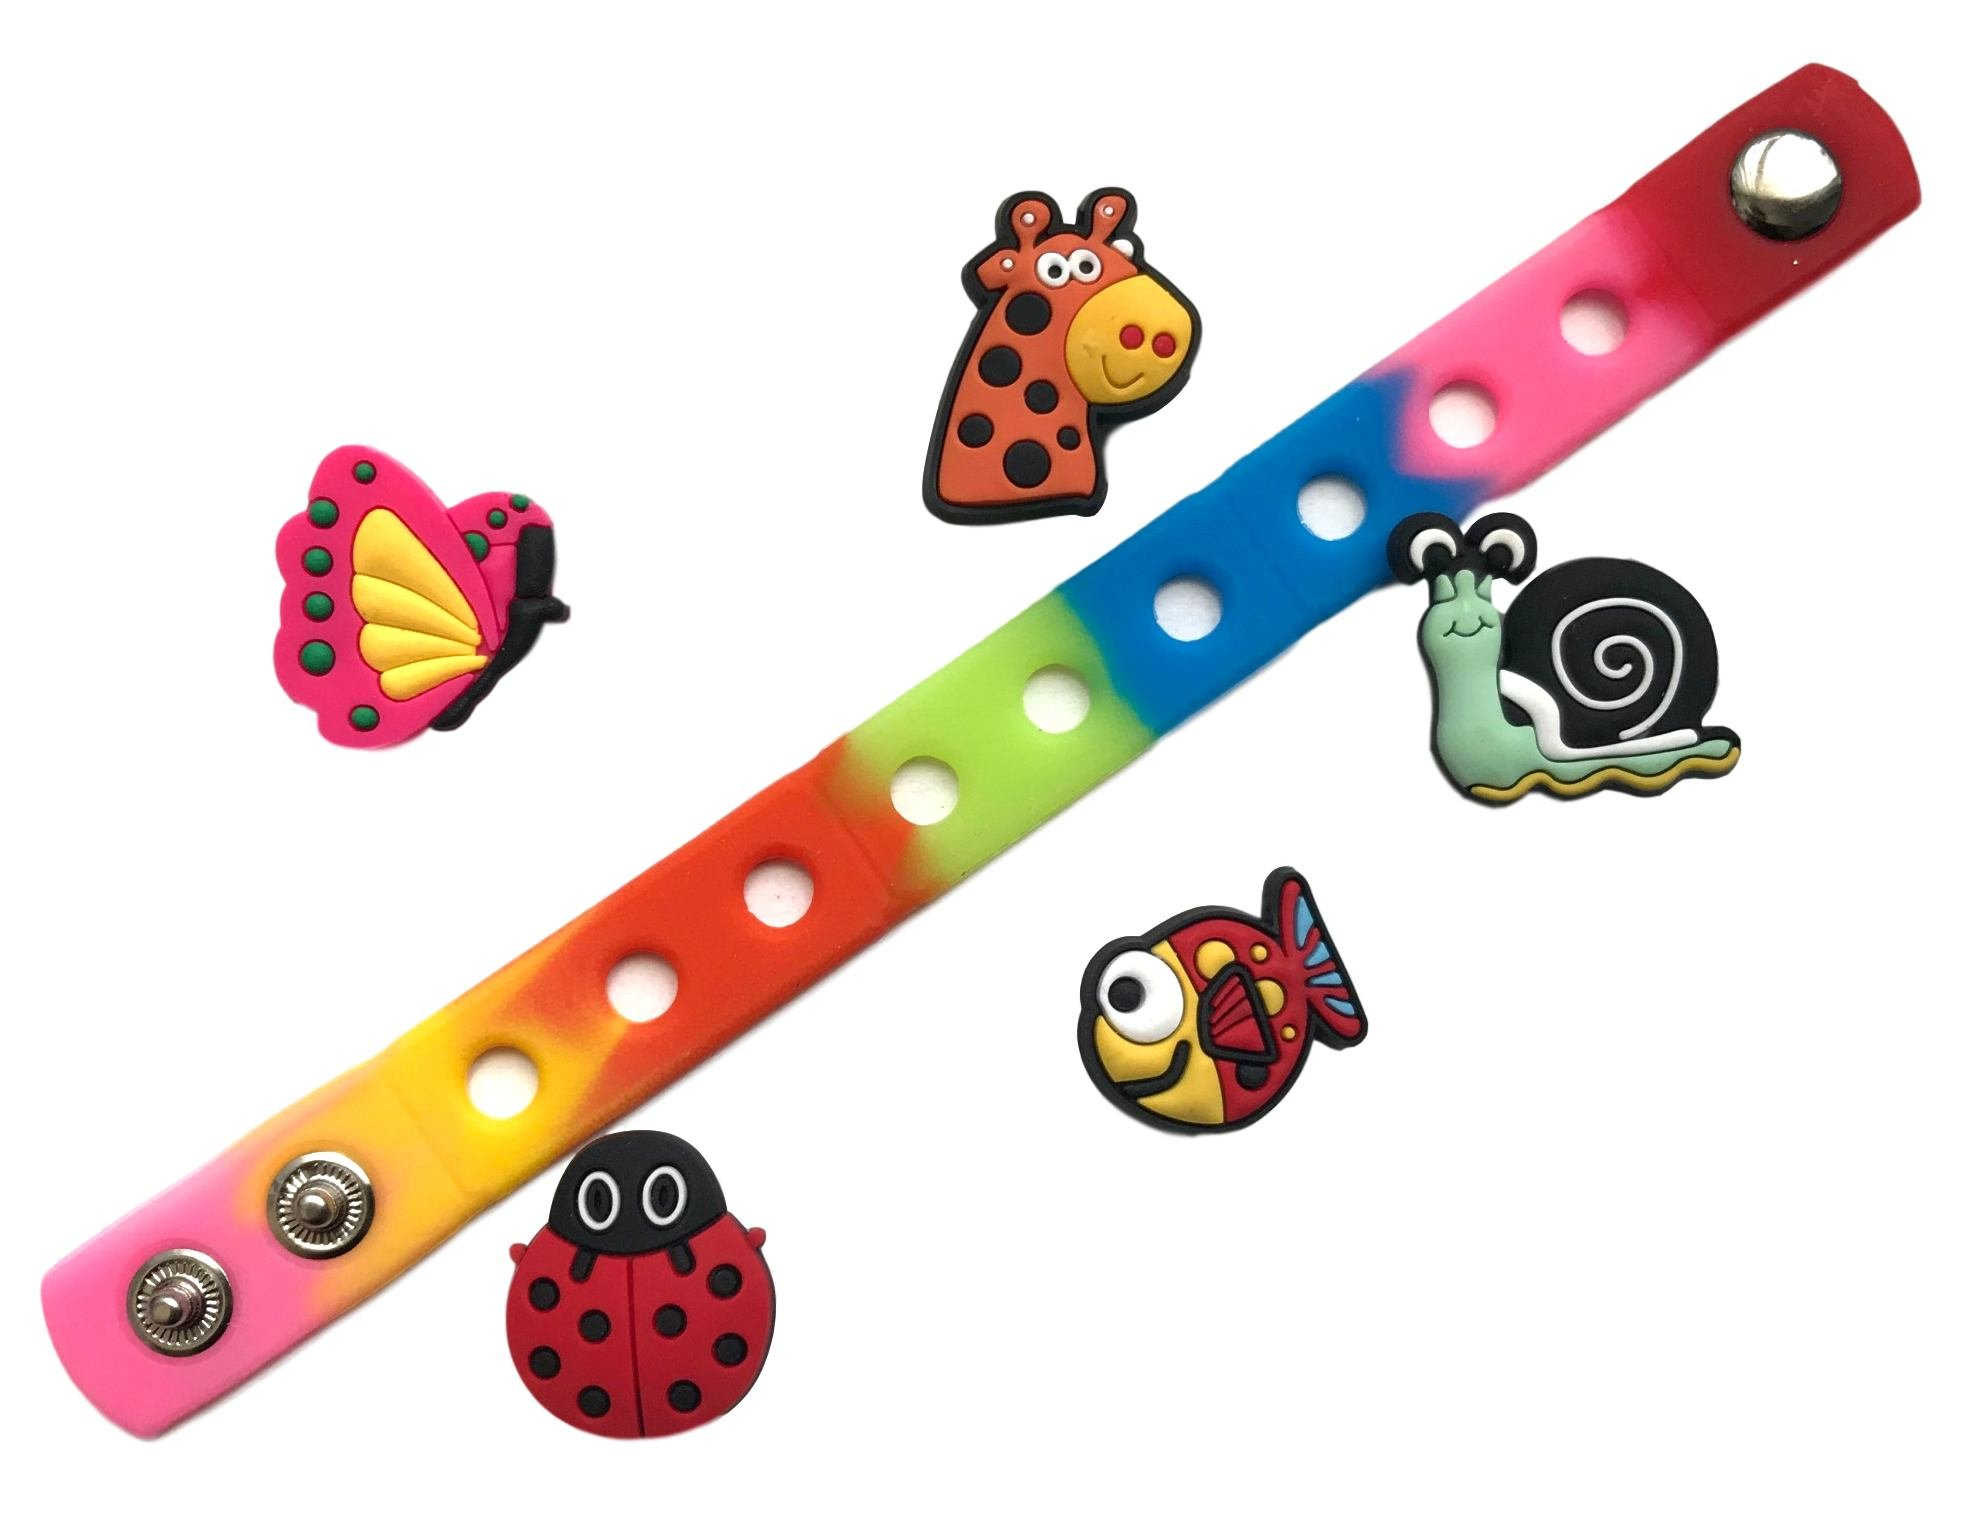 Cute Jibbitz Shoe Charms PVC Plug by Nenistore Accessories for Crocs Shoes & Bracelet Wristband Party Gifts   Animals (5 pcs) FREE 01 Silicone Wristband 7 Inches